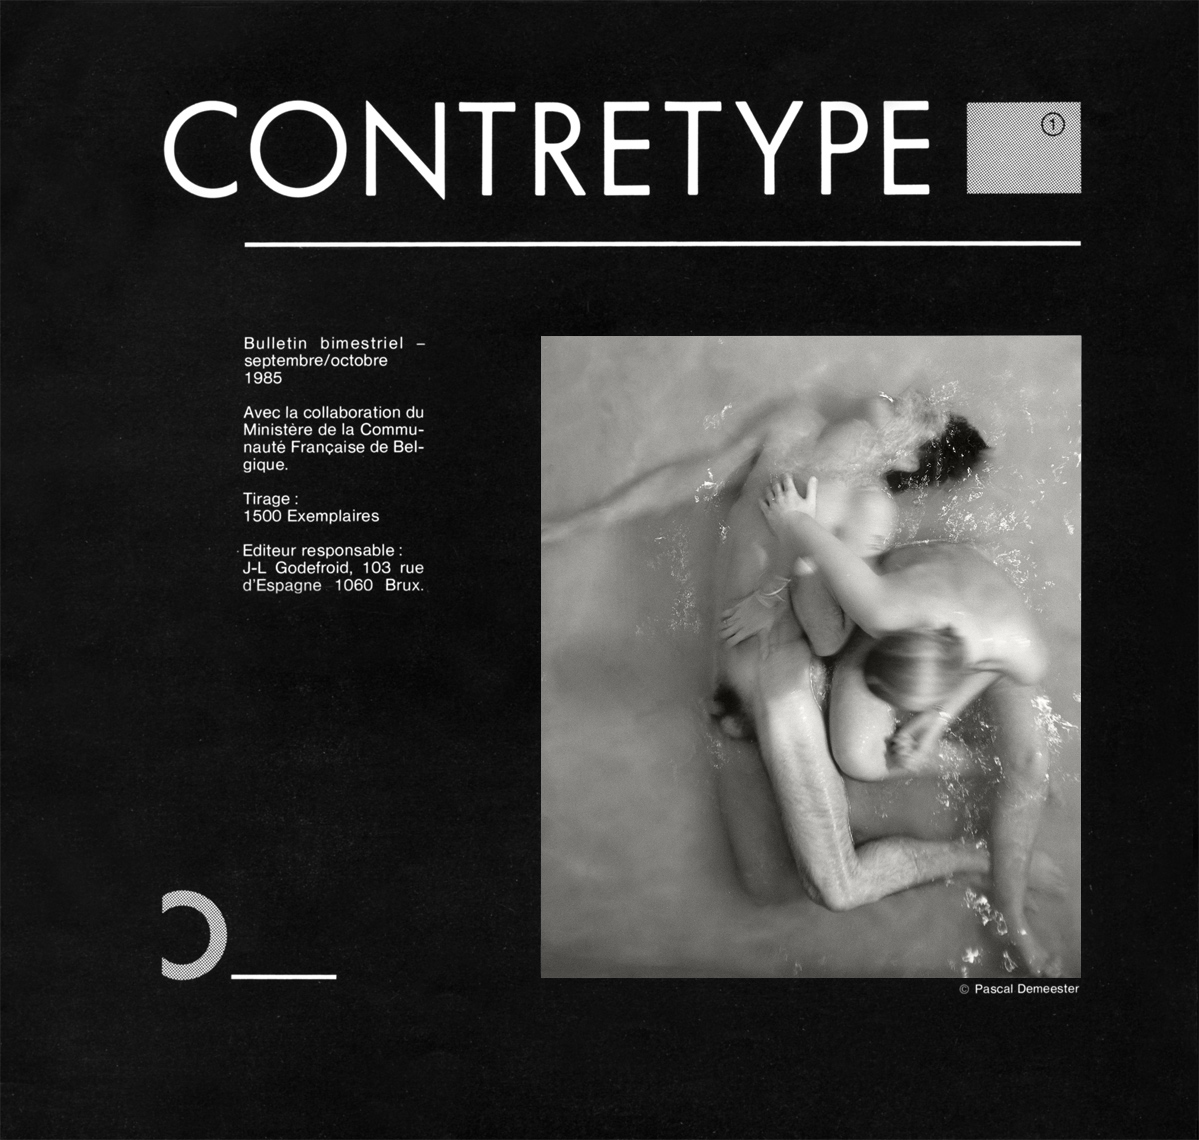 Contretype-Deluge-Cataloge-Cover-1985-Pascal-Demeester